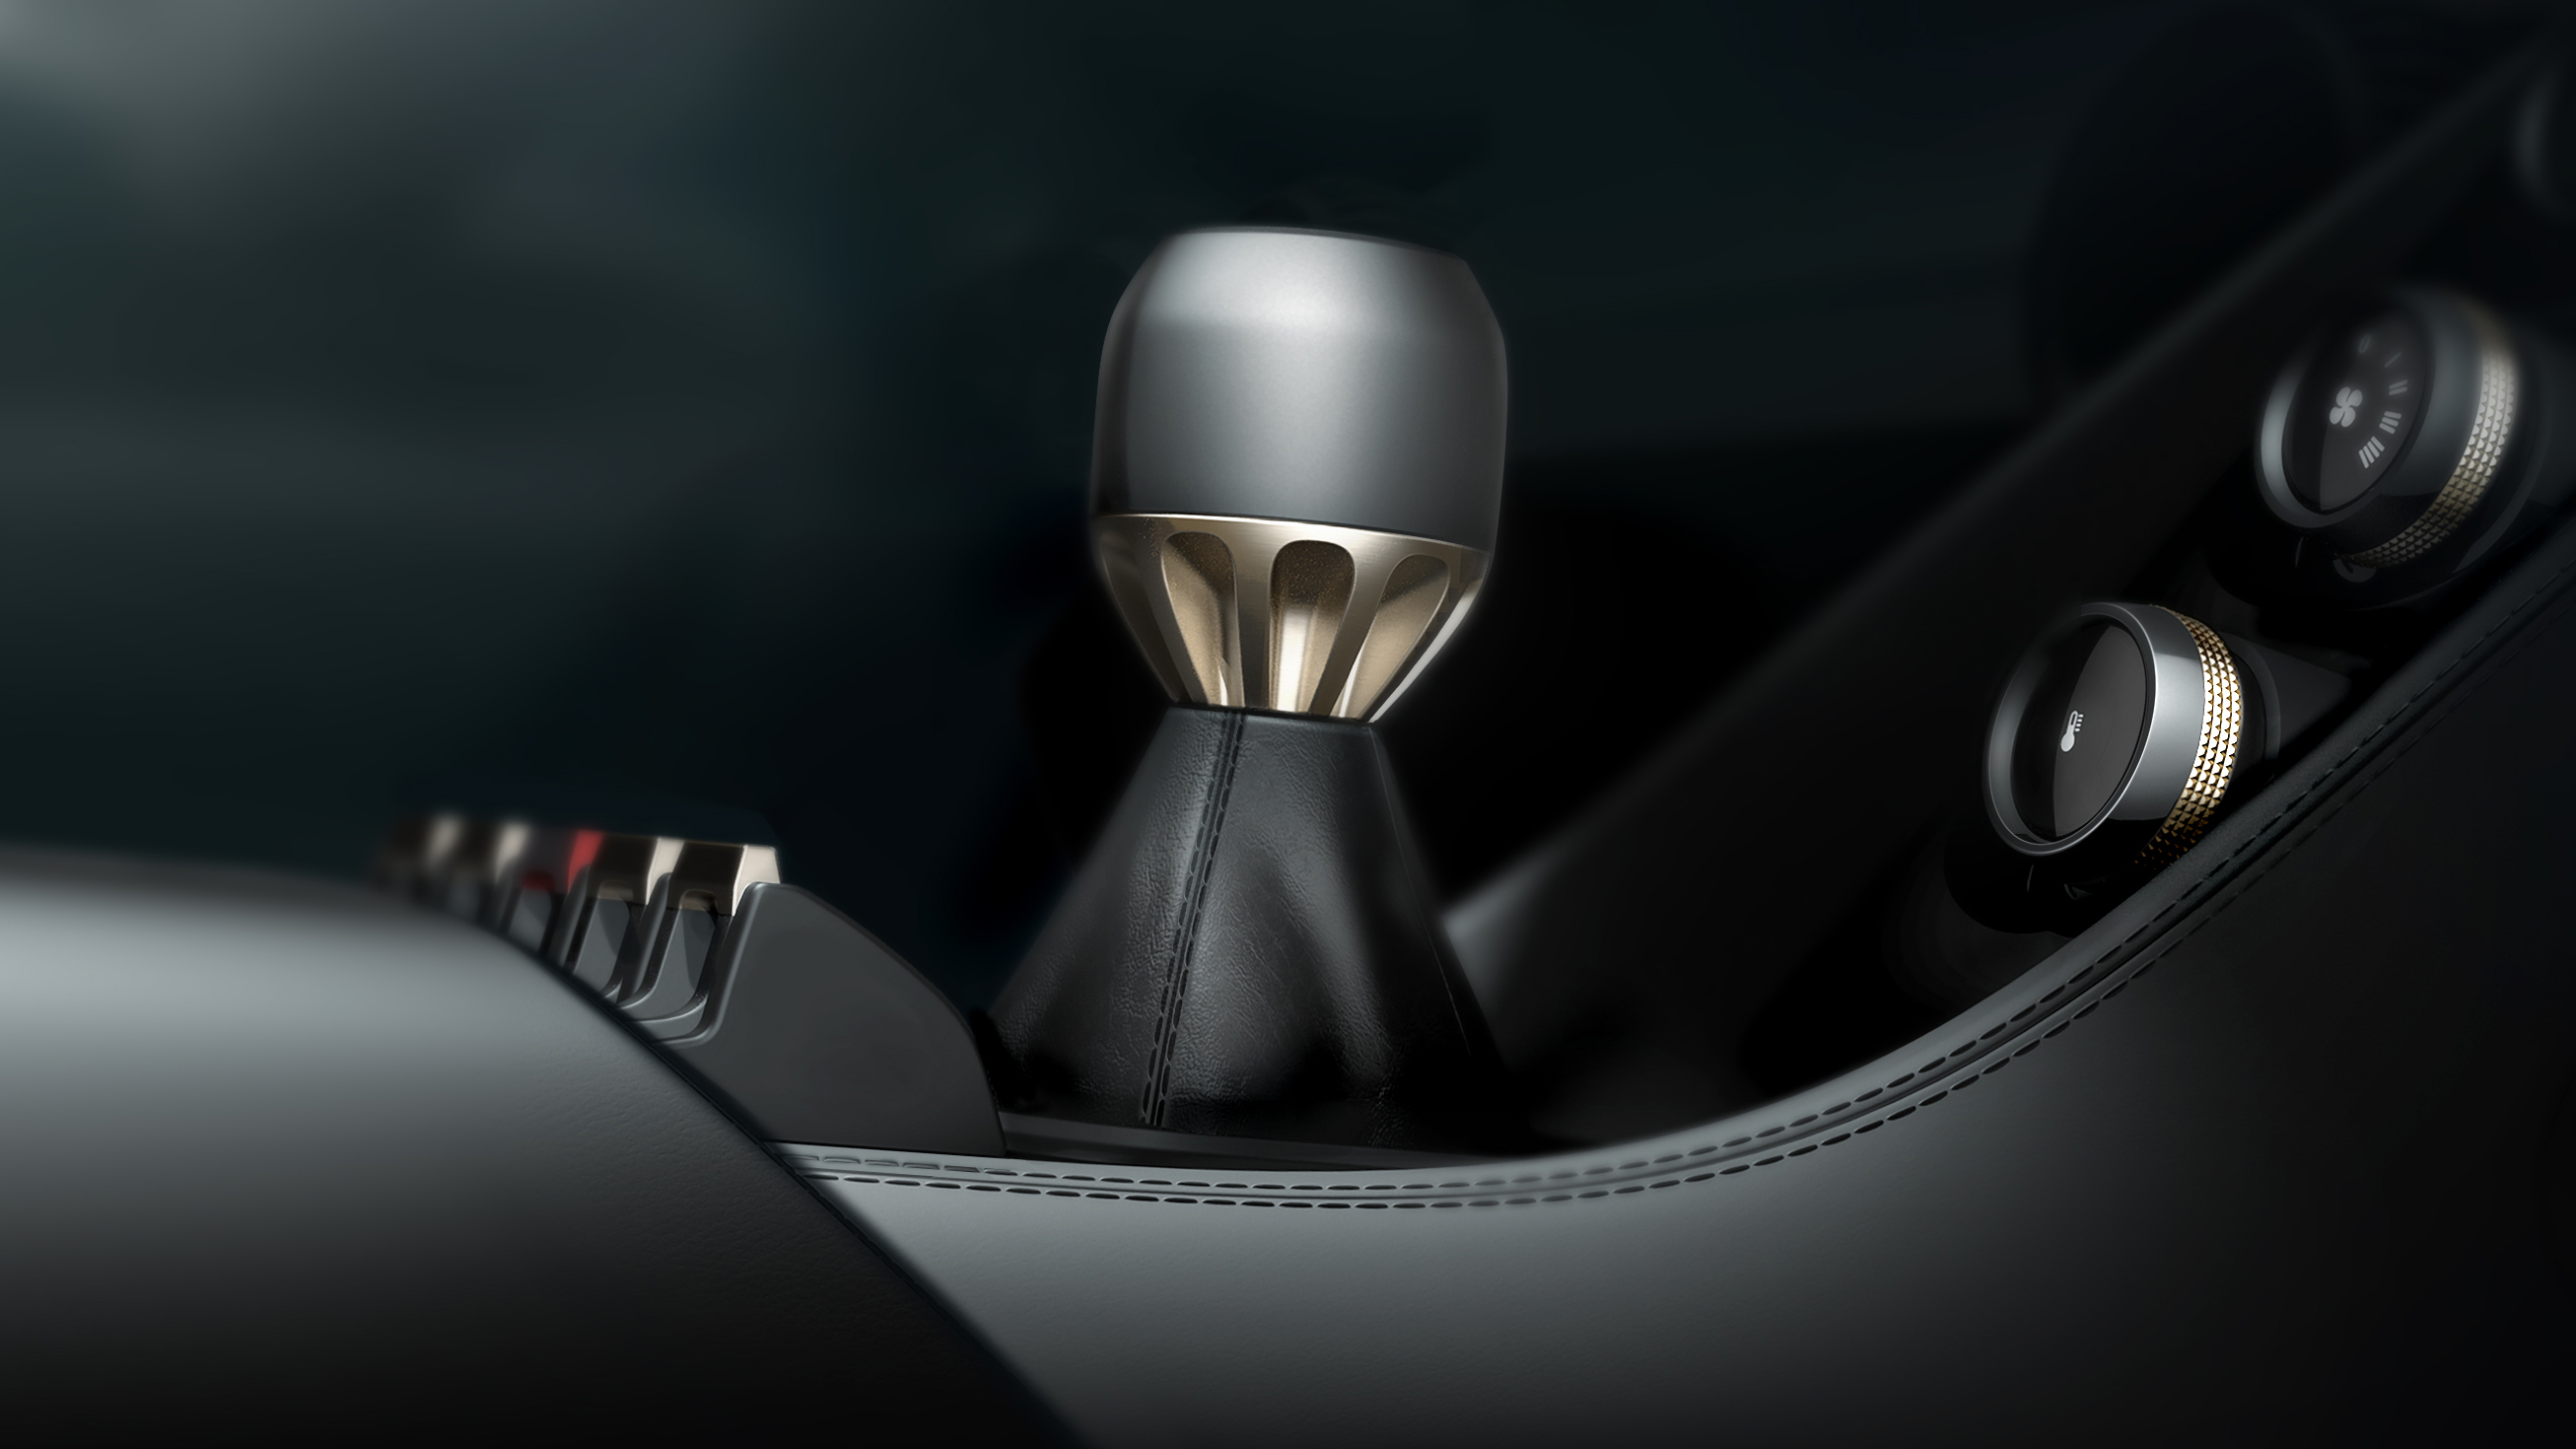 New TVR manual gearbox